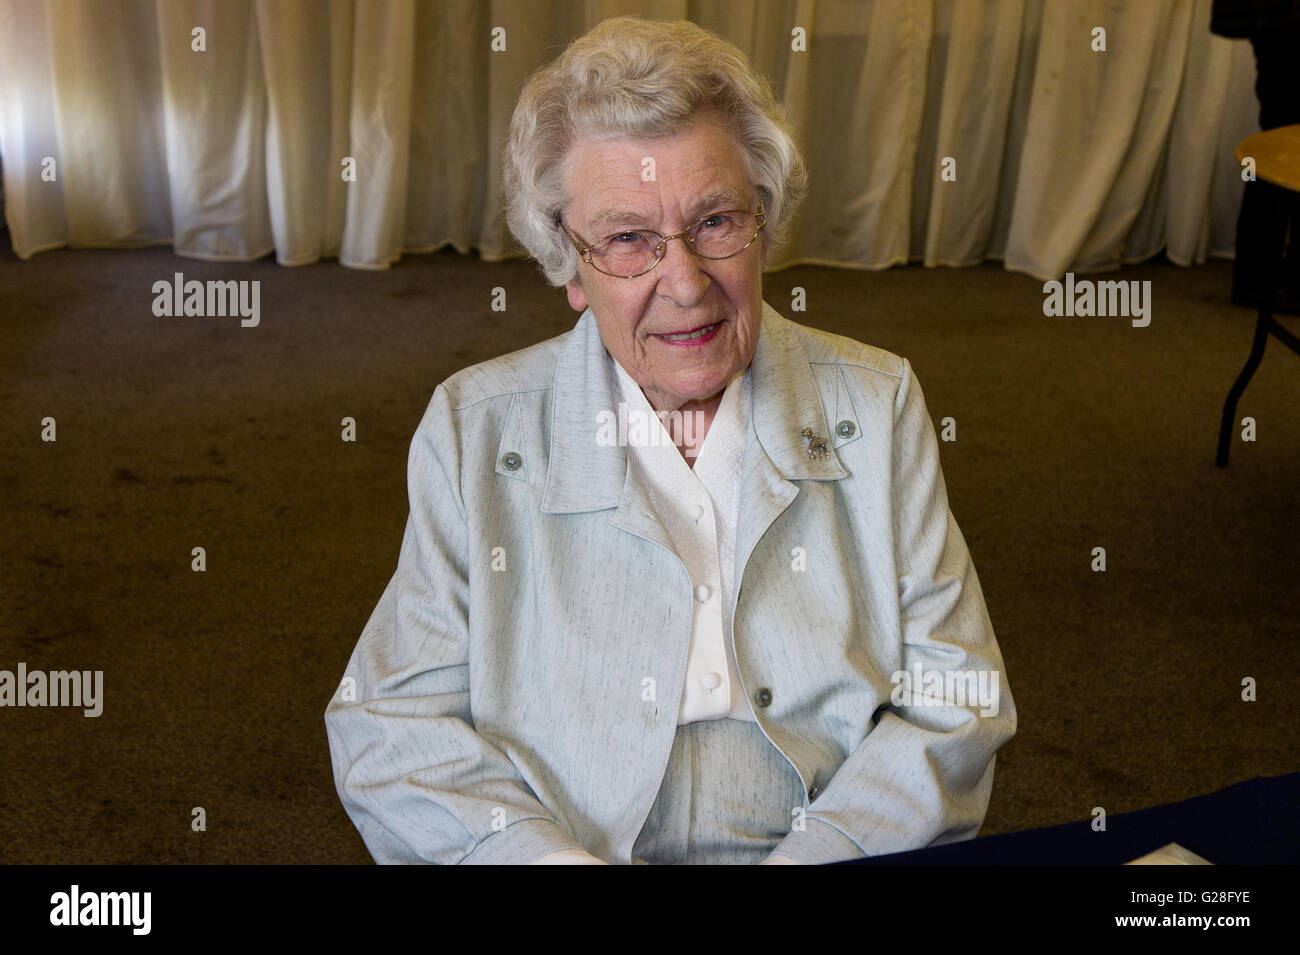 Zena Skinner, chef, writer and cookery expert on TV and radio, pictured after giving a talk to Northampton U3A - Stock Image